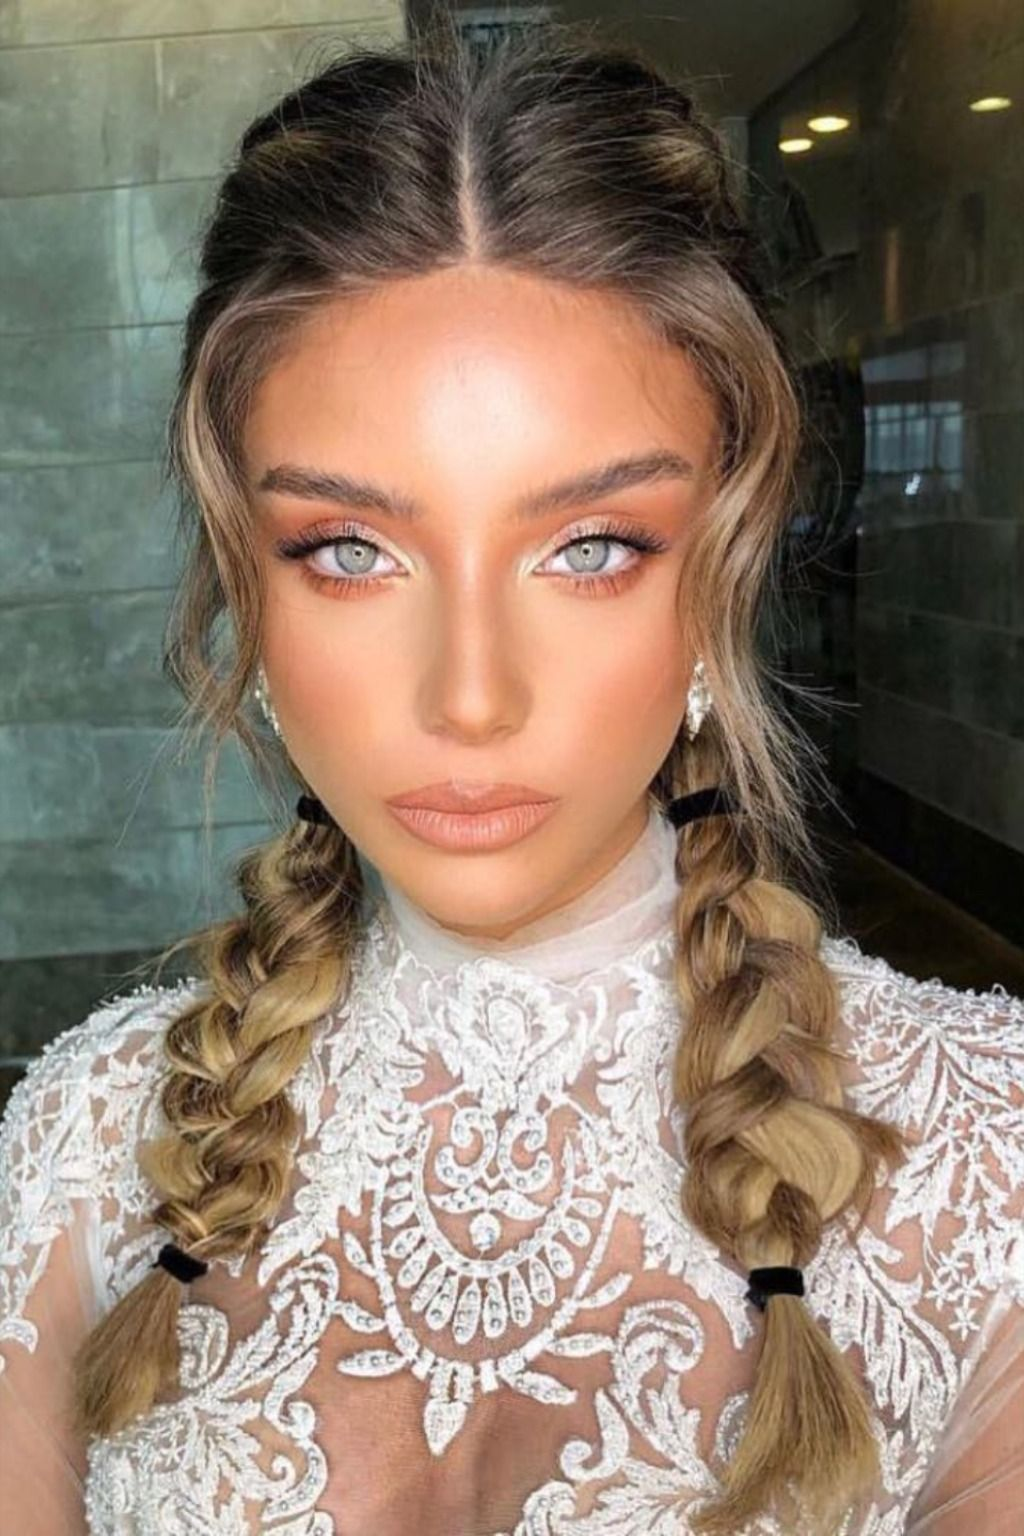 These Fall Hairstyles Will Make You Look Gorgeous Braided Hairstyles Hair Makeup Hair Styles